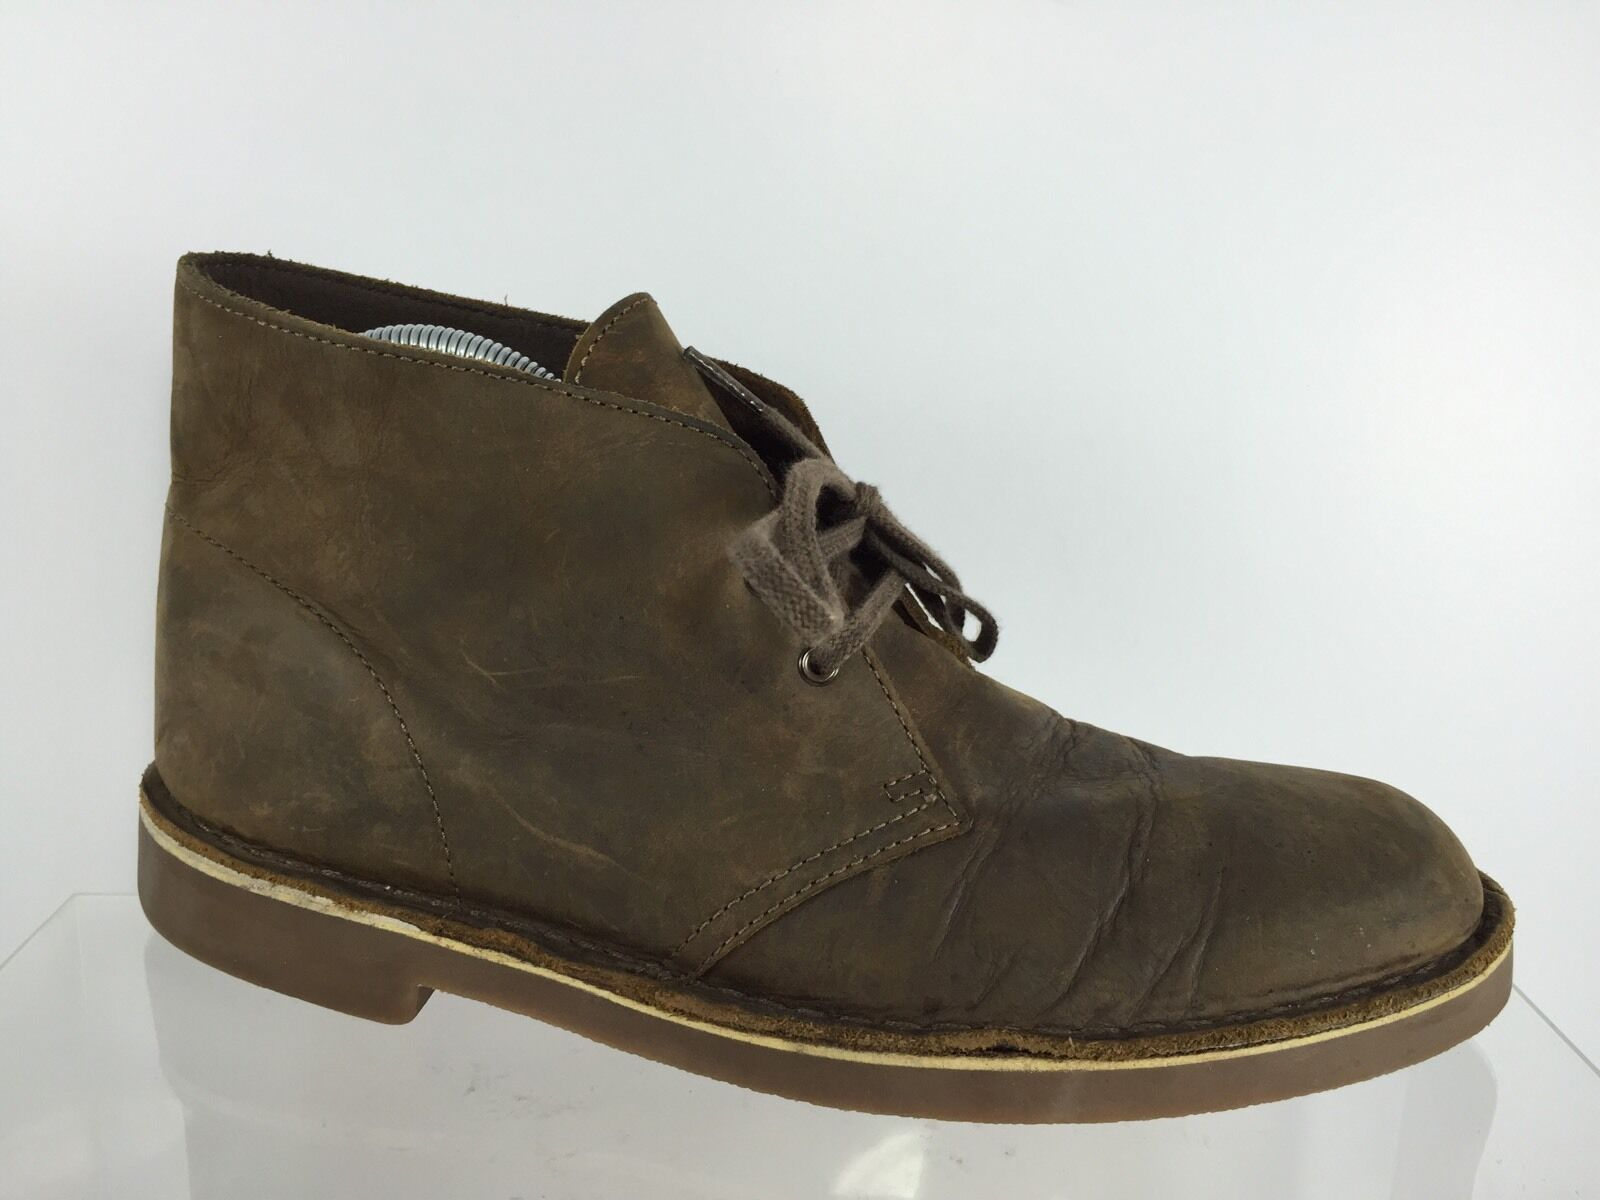 Clarks Uomo Brown Pelle Ankle Stivali 8.5 M